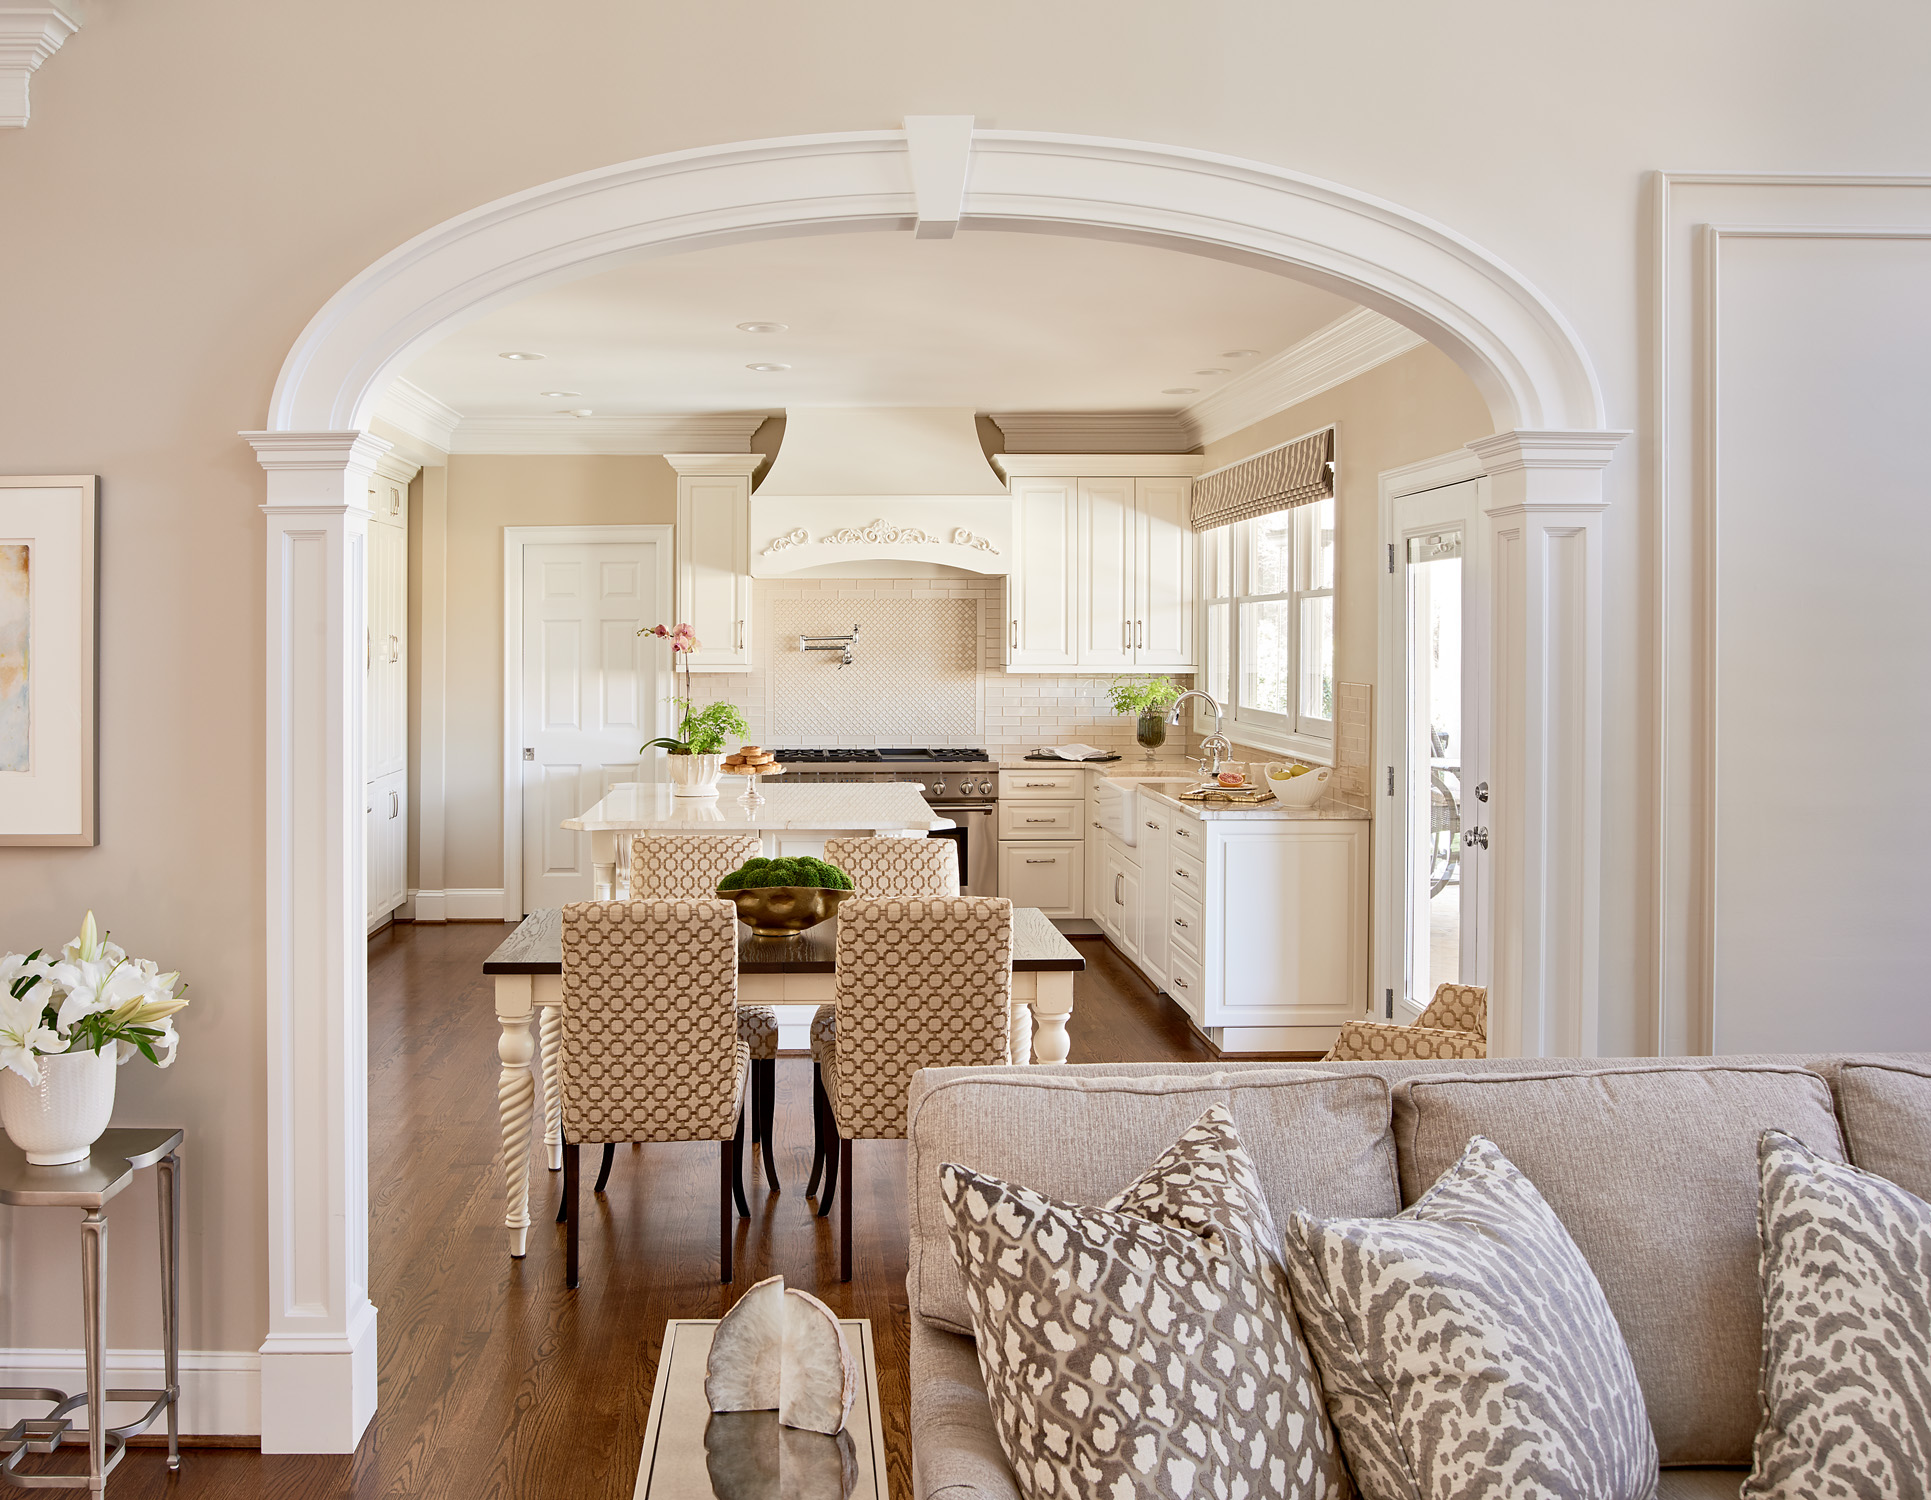 Family room archway looking into transitional kitchen showing architectural details